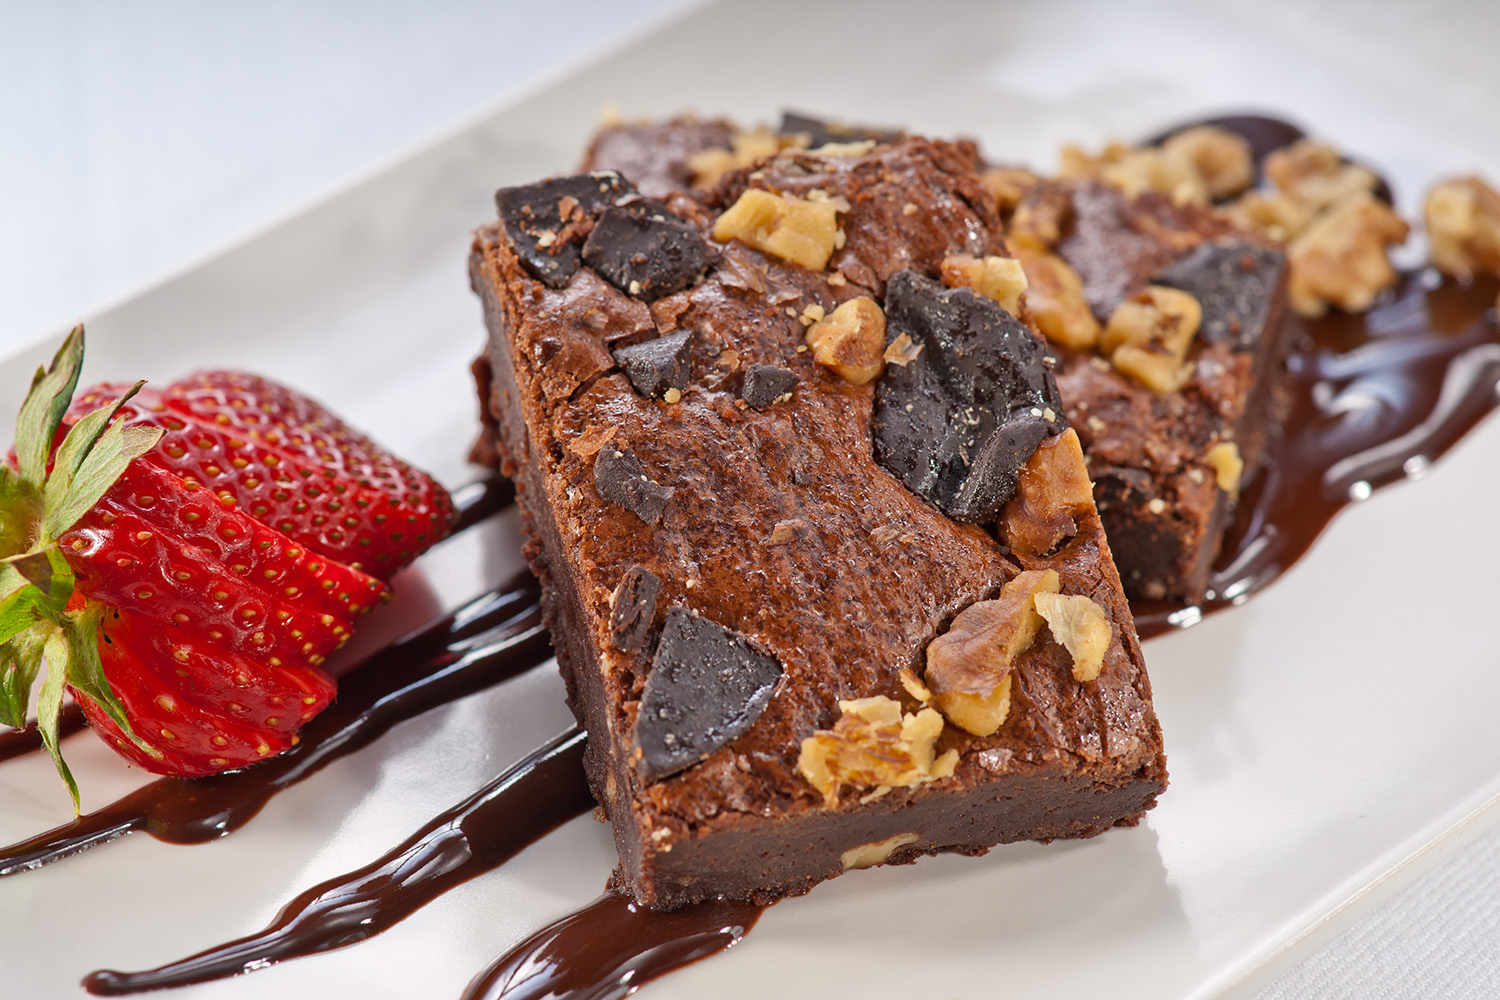 Fudge Nut Brownie - Calling all chocolate lovers: the rich, fudge flavor of this nut brownie is beyond compare! Delicious served plain or as the base for creative desserts.